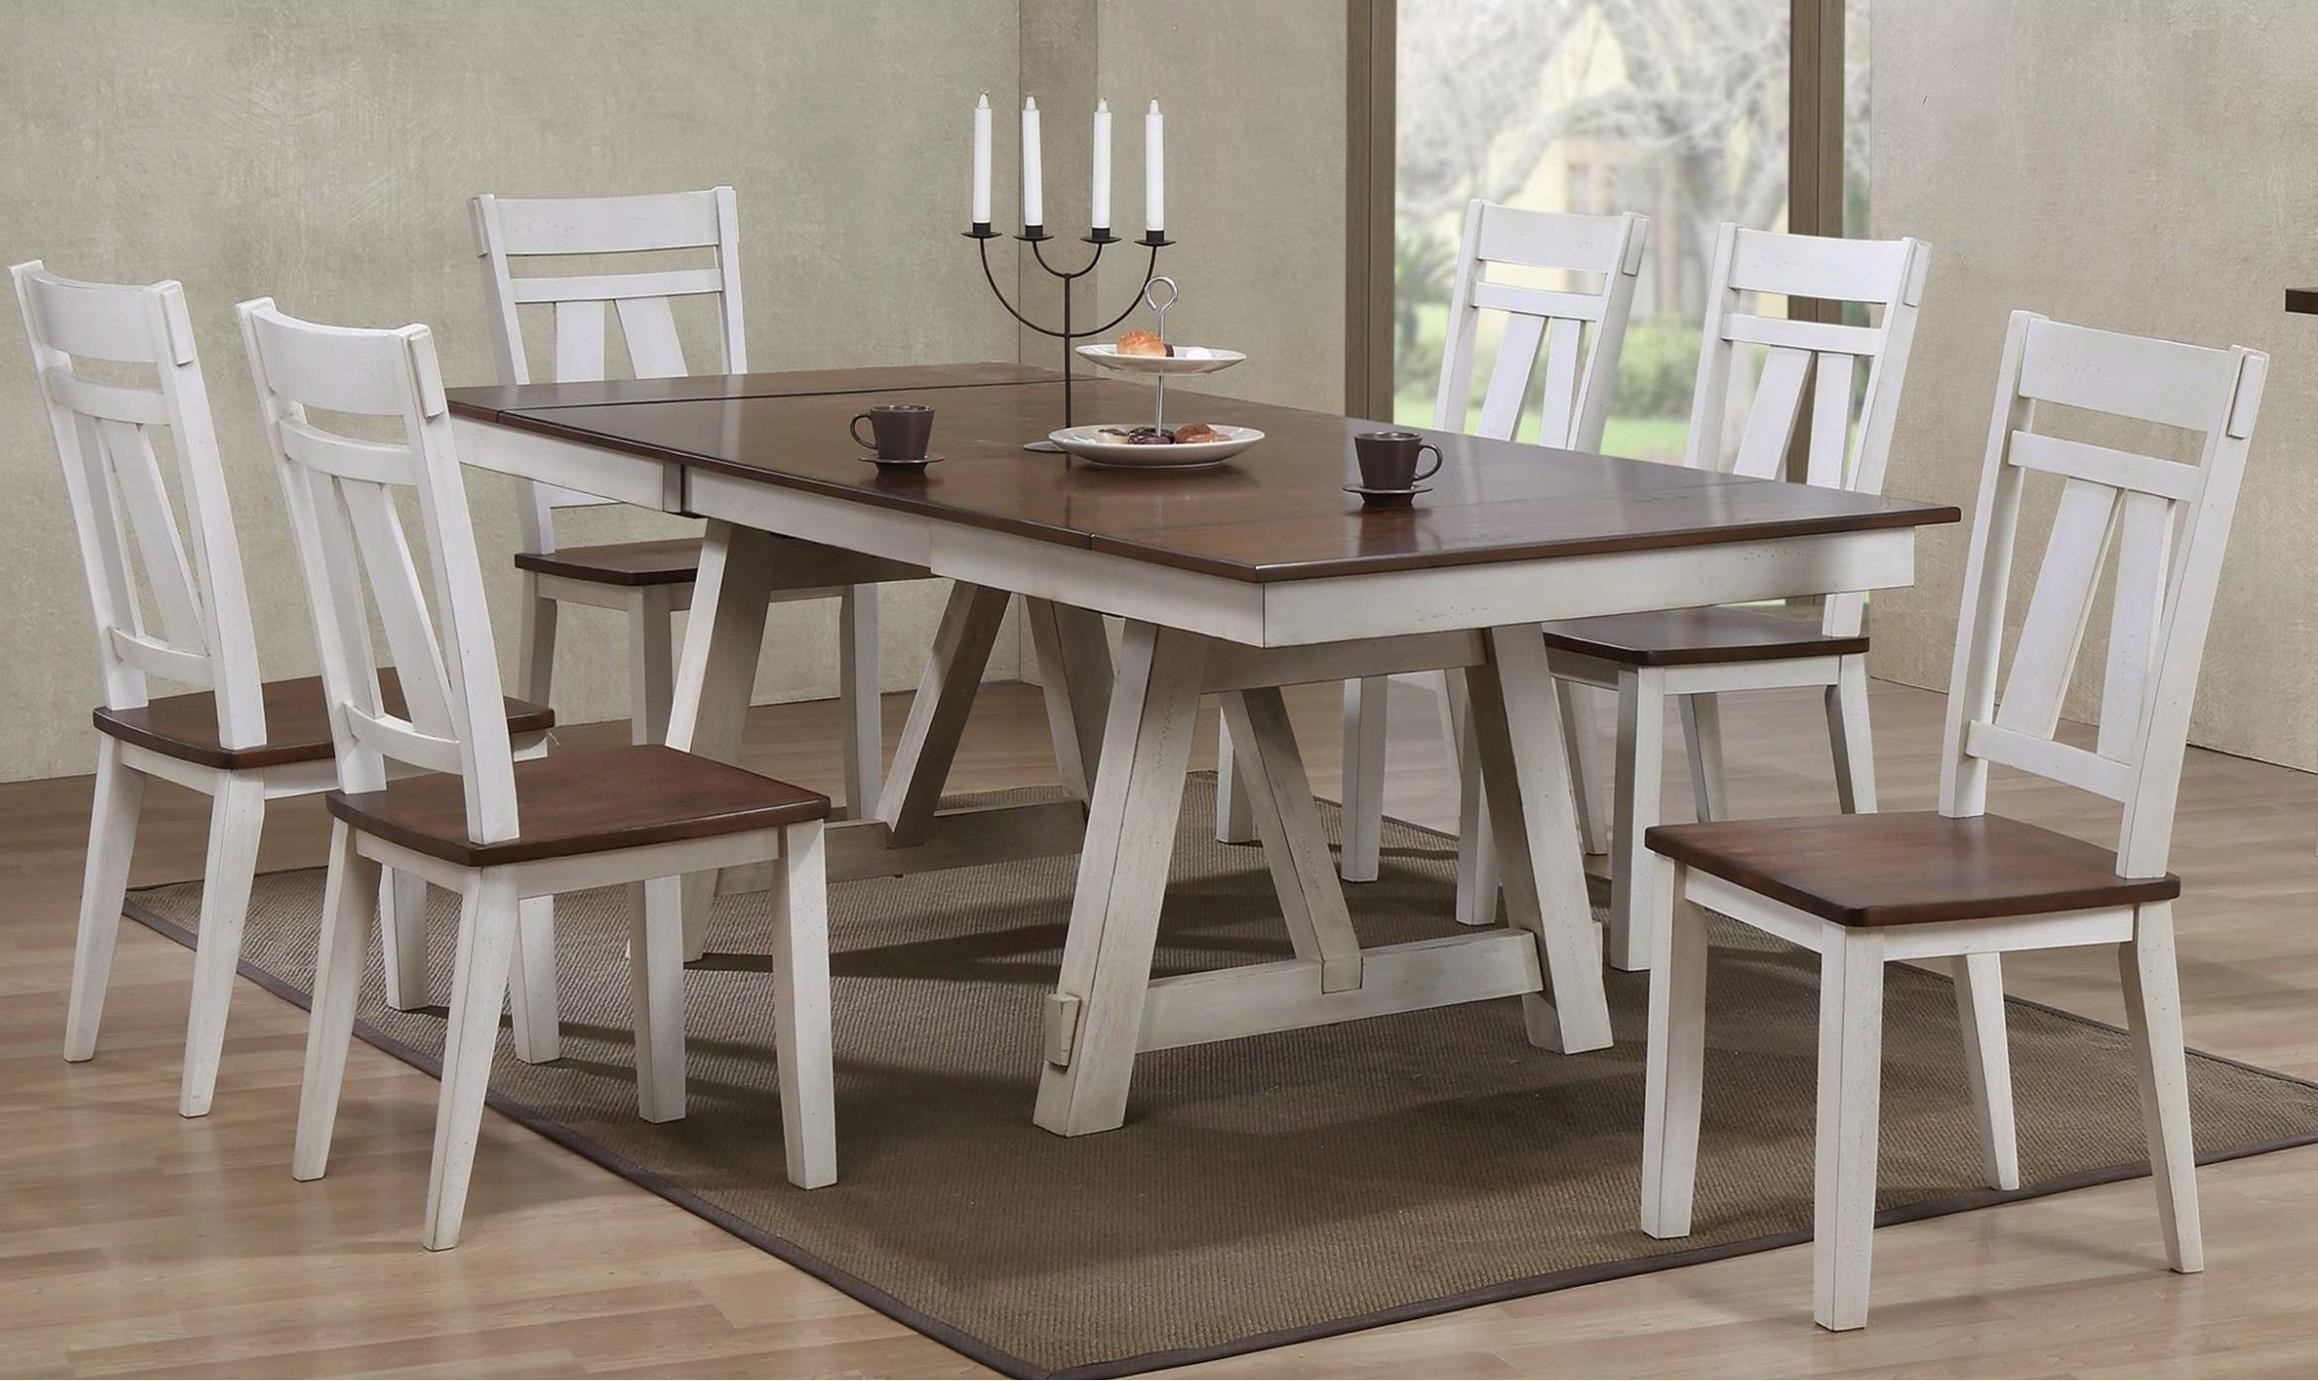 Bernards Winslow7-Piece Dining Table Set ...  sc 1 st  Miskelly Furniture : 7 piece dining table set - pezcame.com